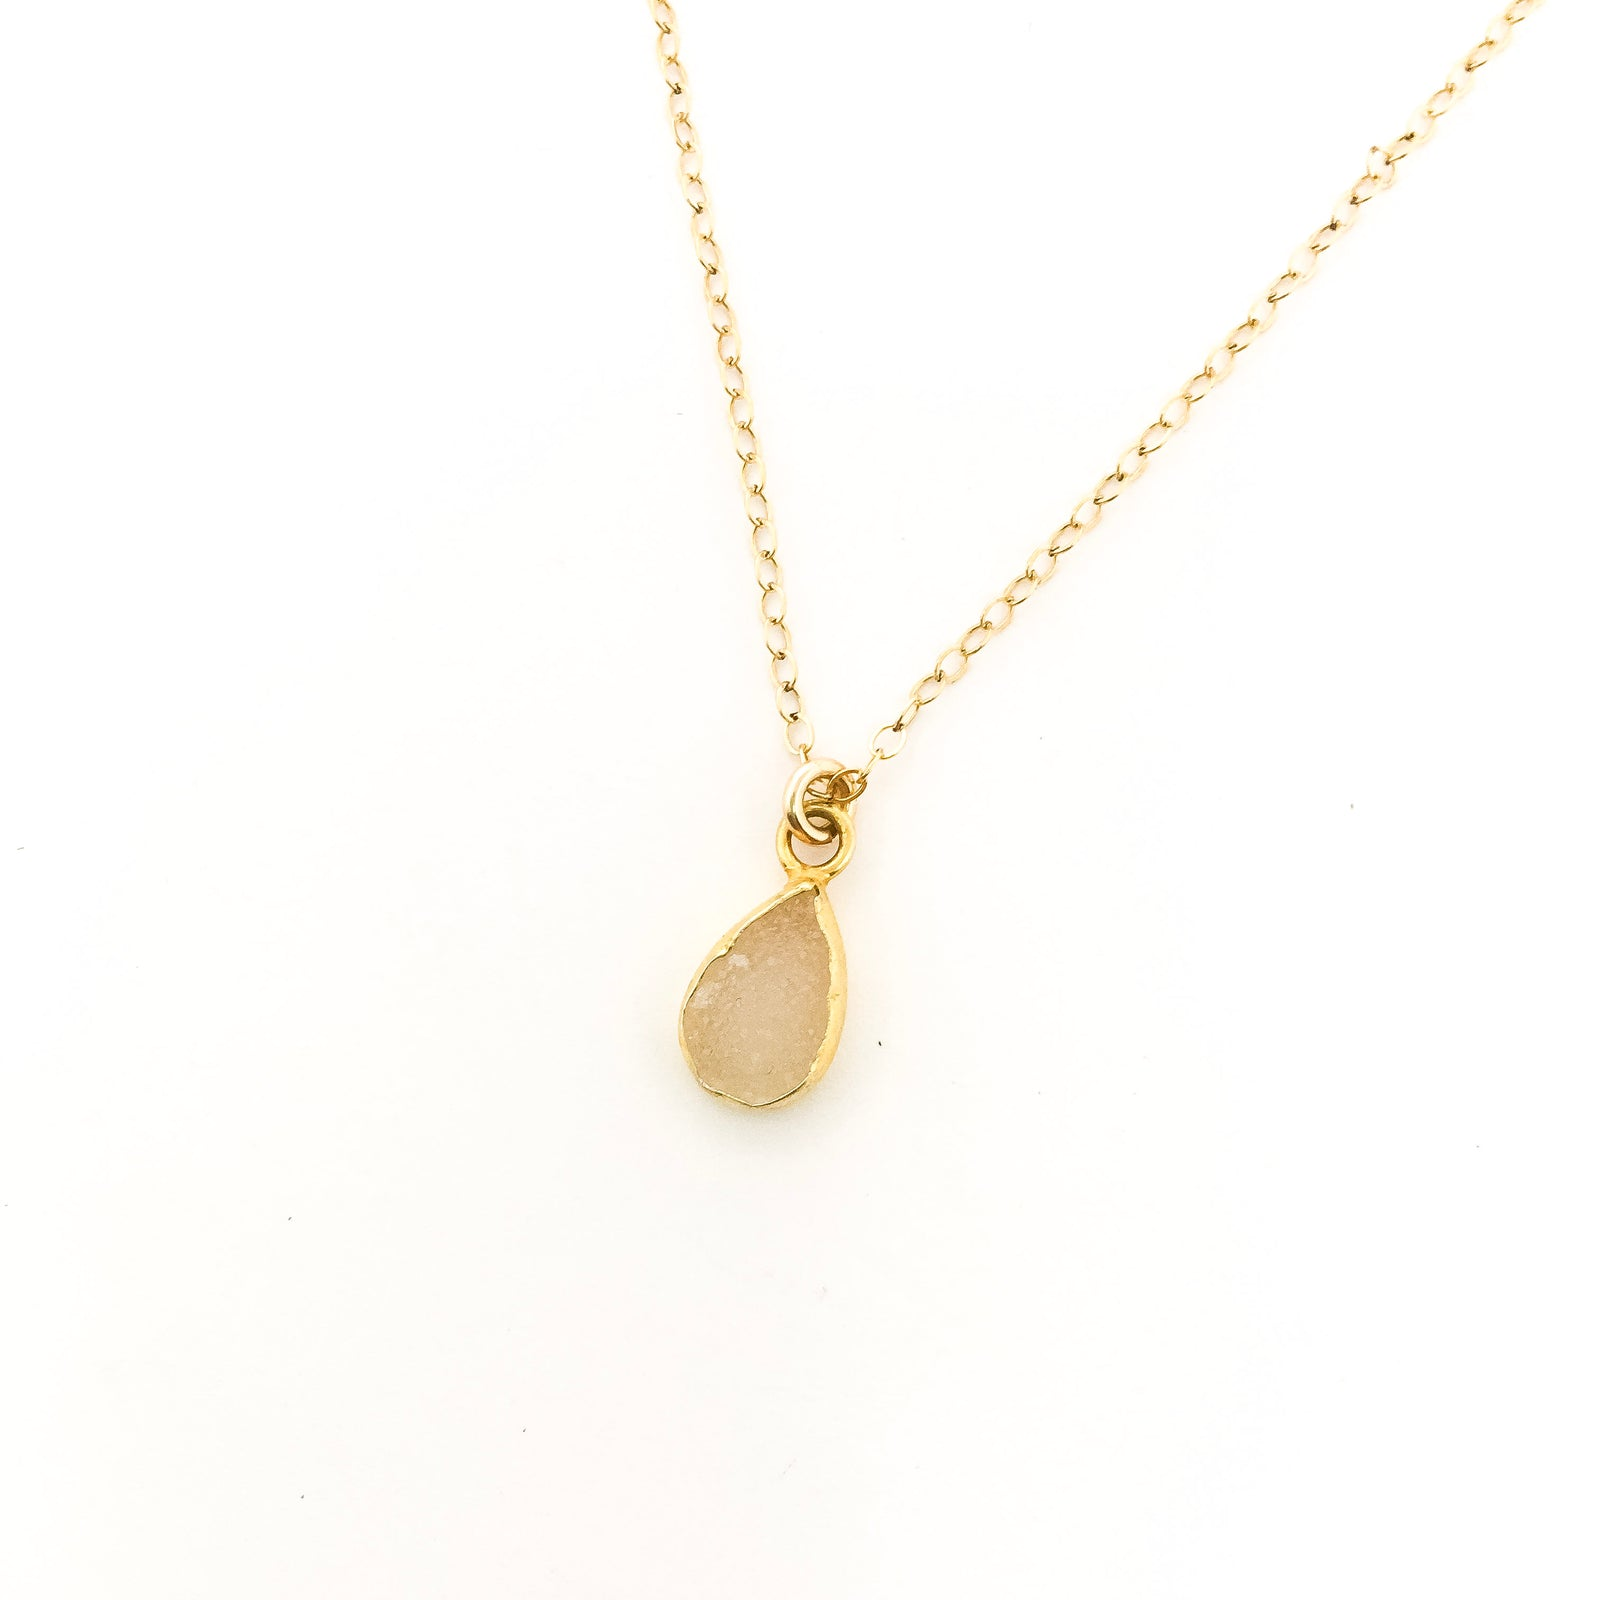 DOUBLE SIDED 14K GOLD-FILLED MINI DRUZY STONE NECKLACES | COLOR OPTIONS